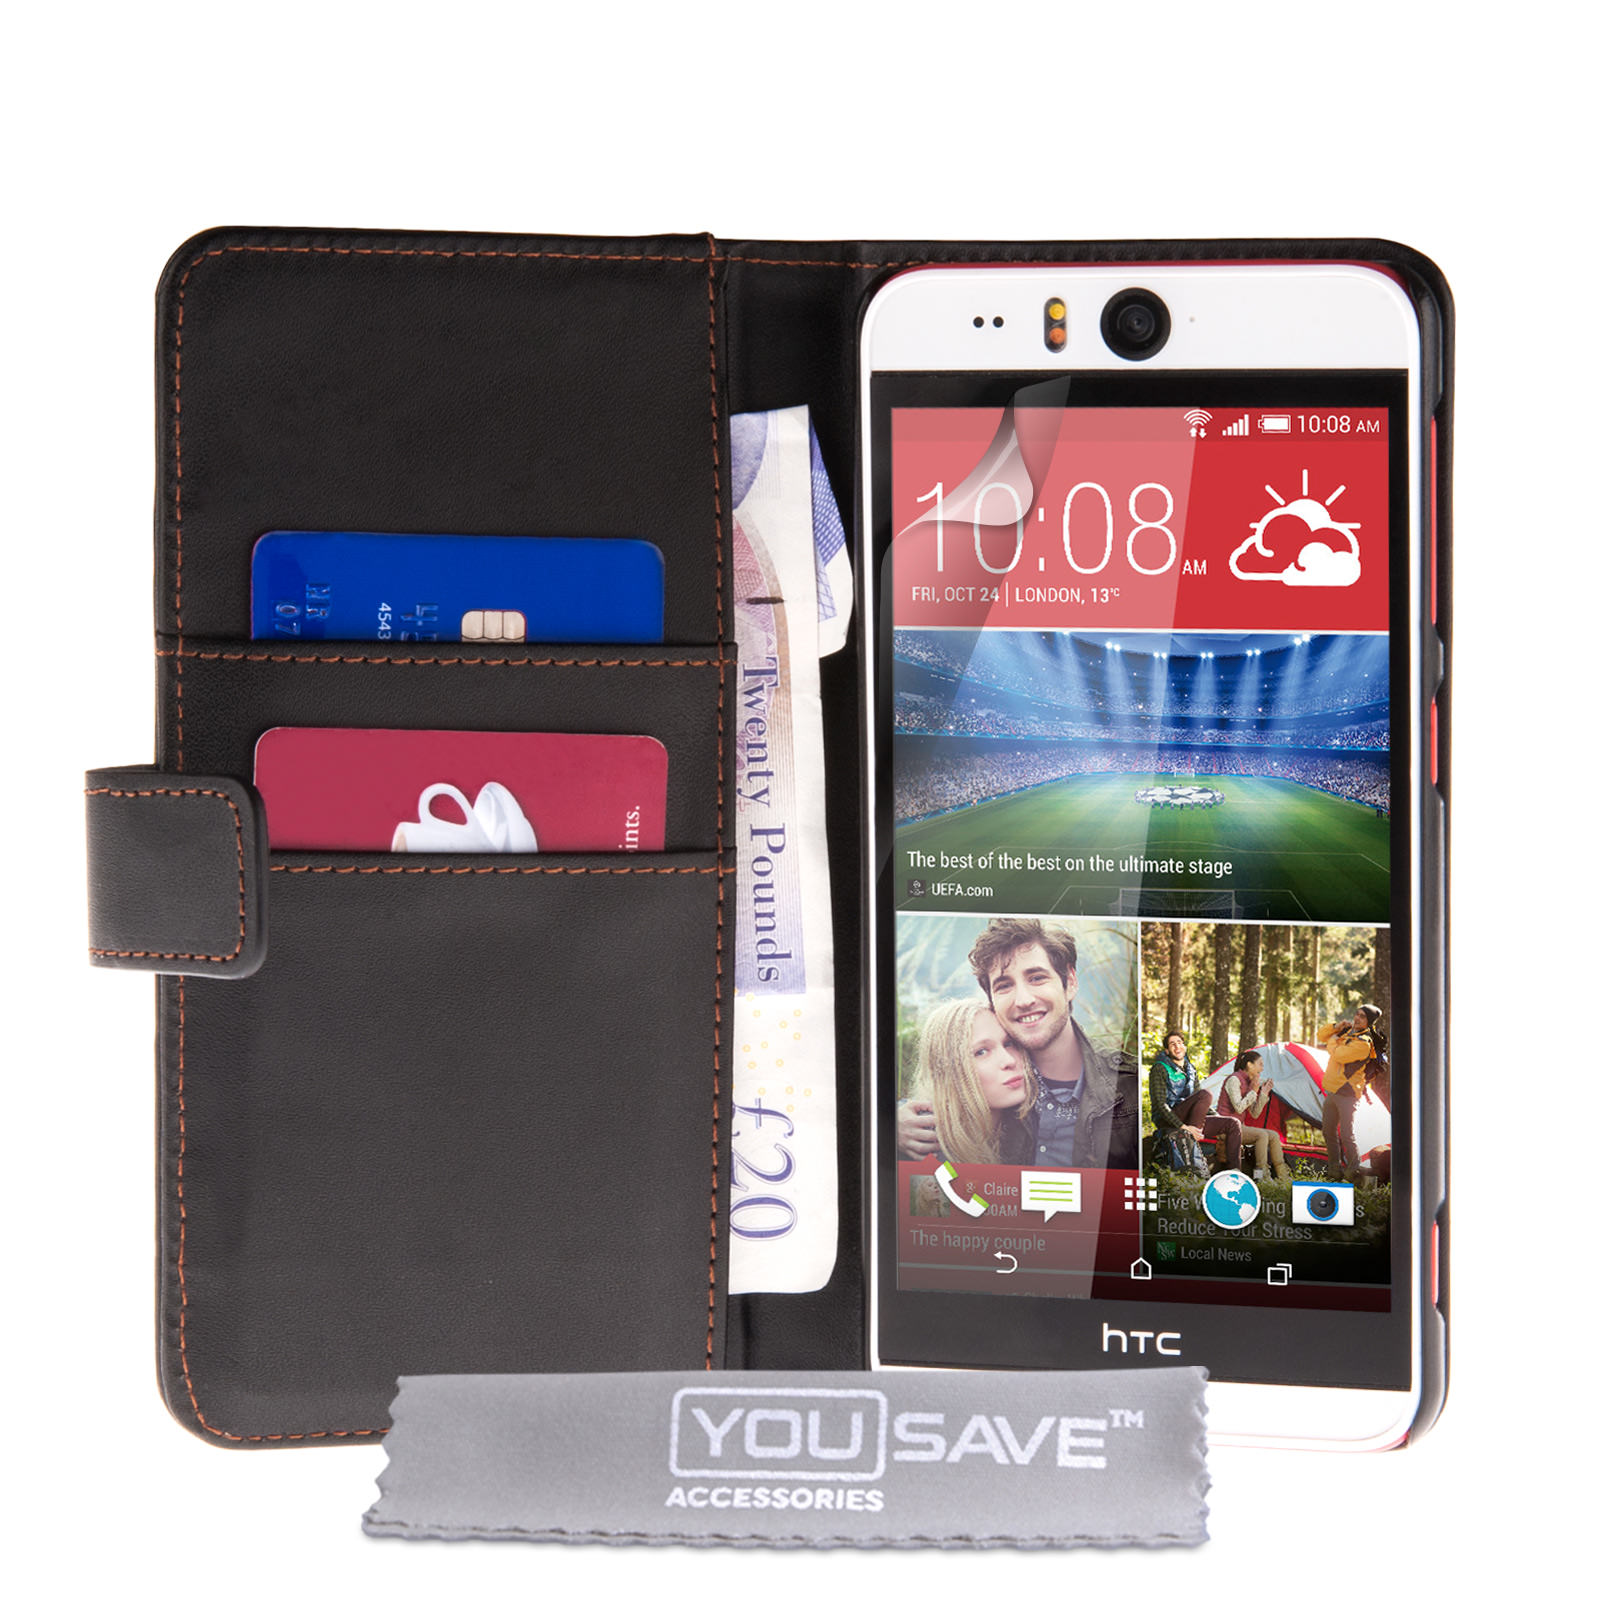 YouSave Accessories HTC Desire EYE Leather-Effect Wallet Case - Black